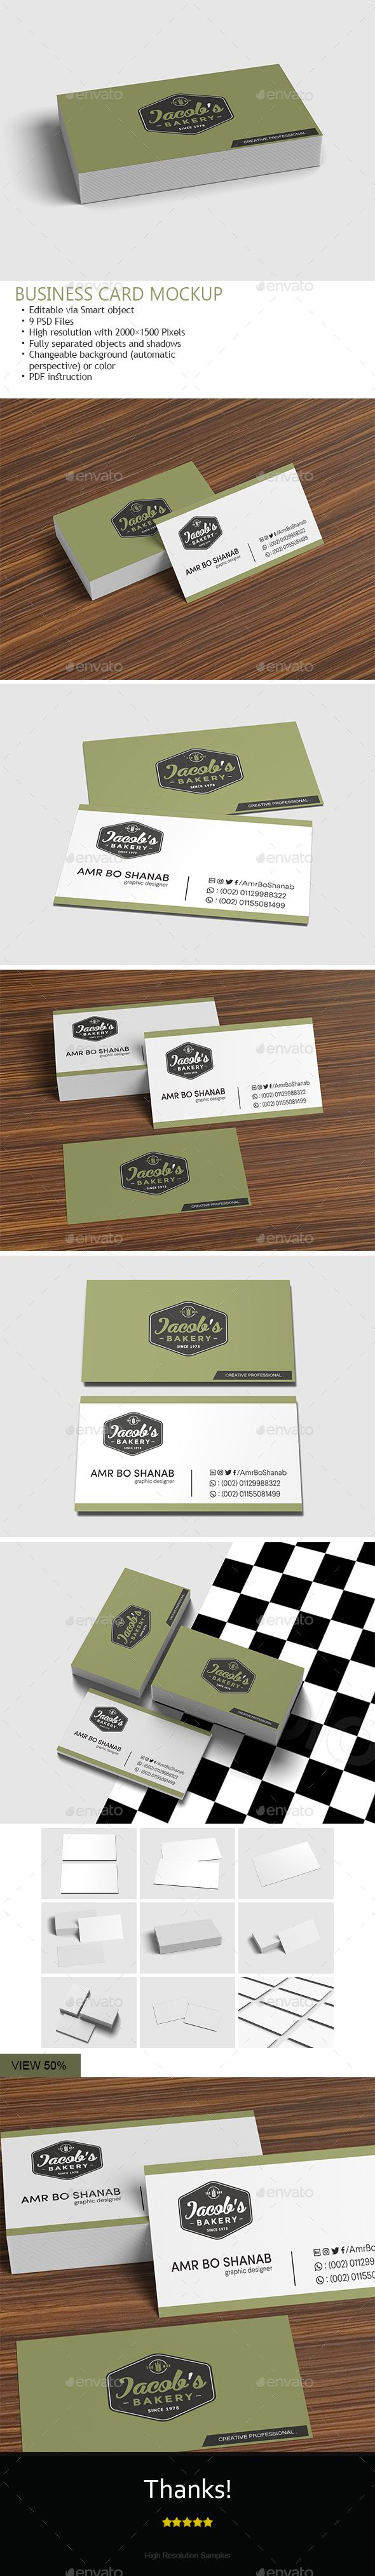 Business card mockup mockup business cards and business 9 photoshop files business card dimensions 35x2 inches high resolution 2000x1500 pixels reheart Choice Image